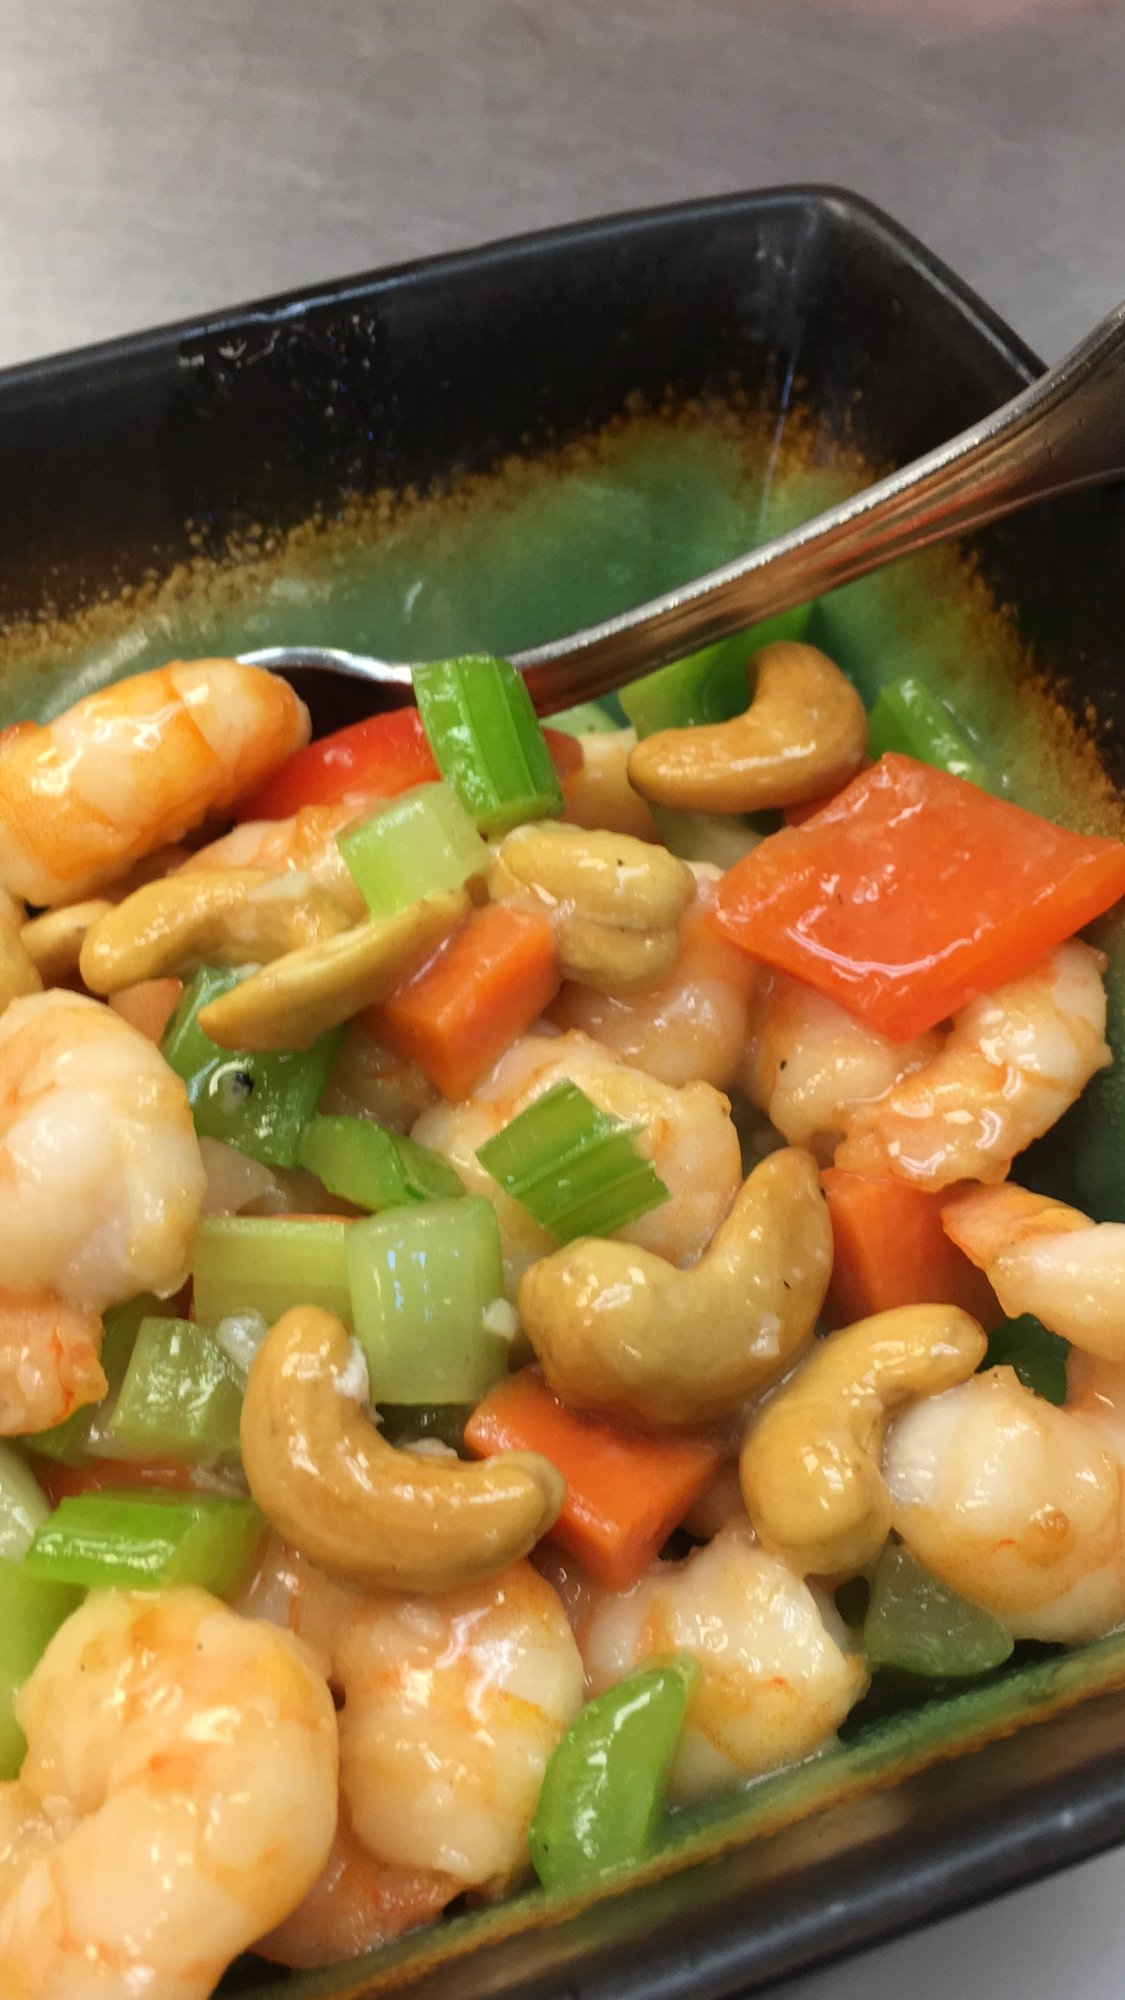 Shrimp with Cashew Nuts